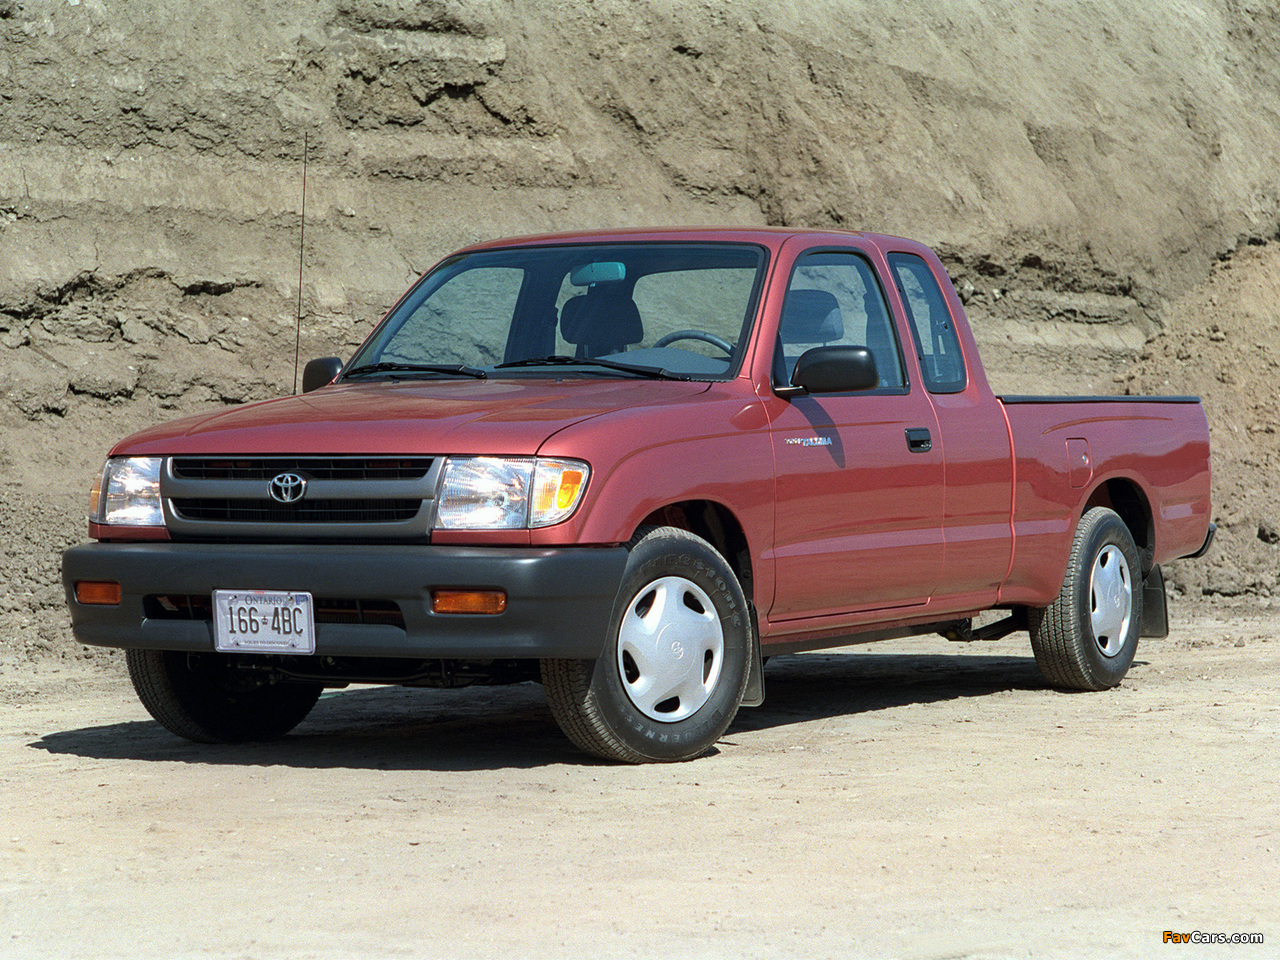 Pictures Of Toyota Tacoma Xtracab 2wd 1998 2000 1280x960